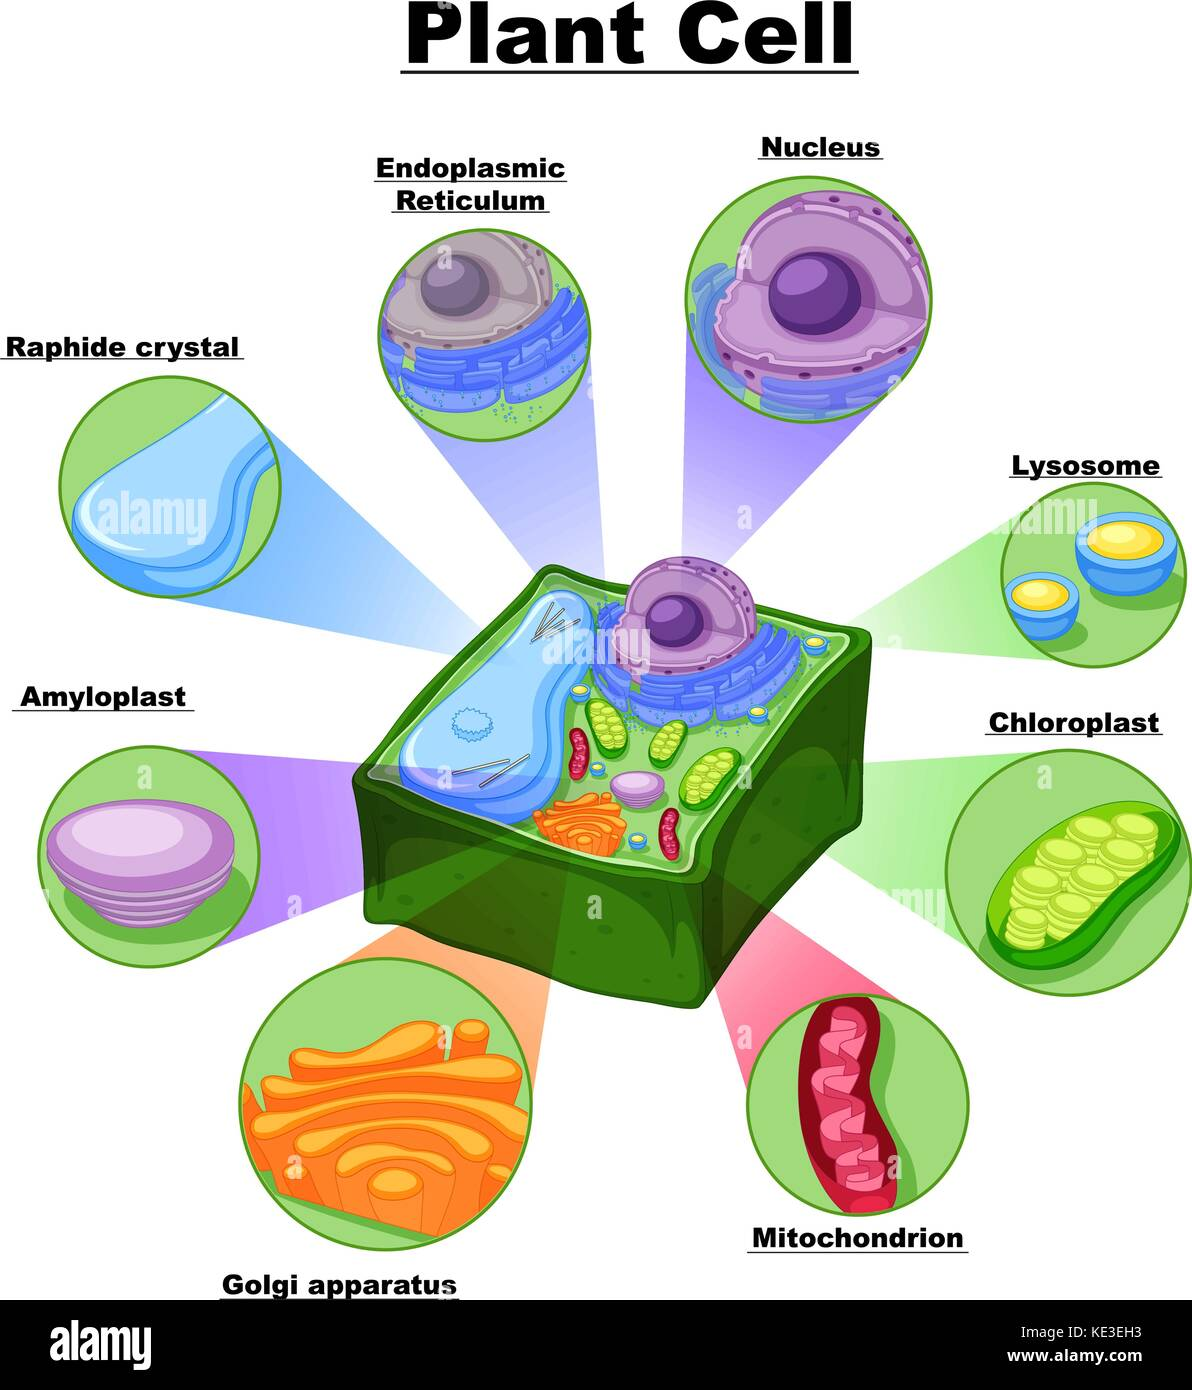 Plant cell chloroplast stock photos plant cell chloroplast stock diagram showing parts of plant cell illustration stock image pooptronica